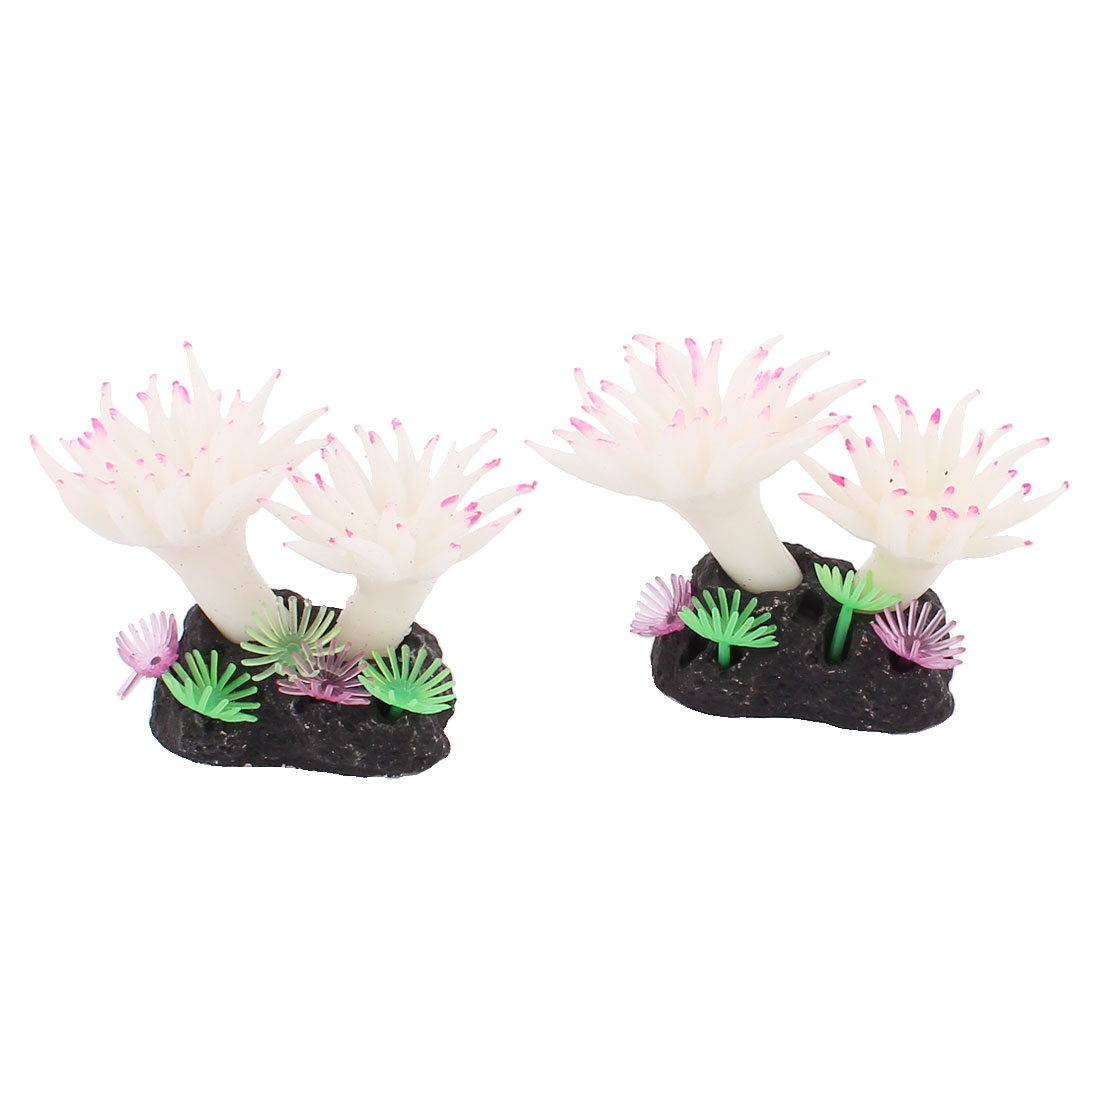 Aquarium Soft Silicone Artificial Sea Coral Ornament White 2pcs